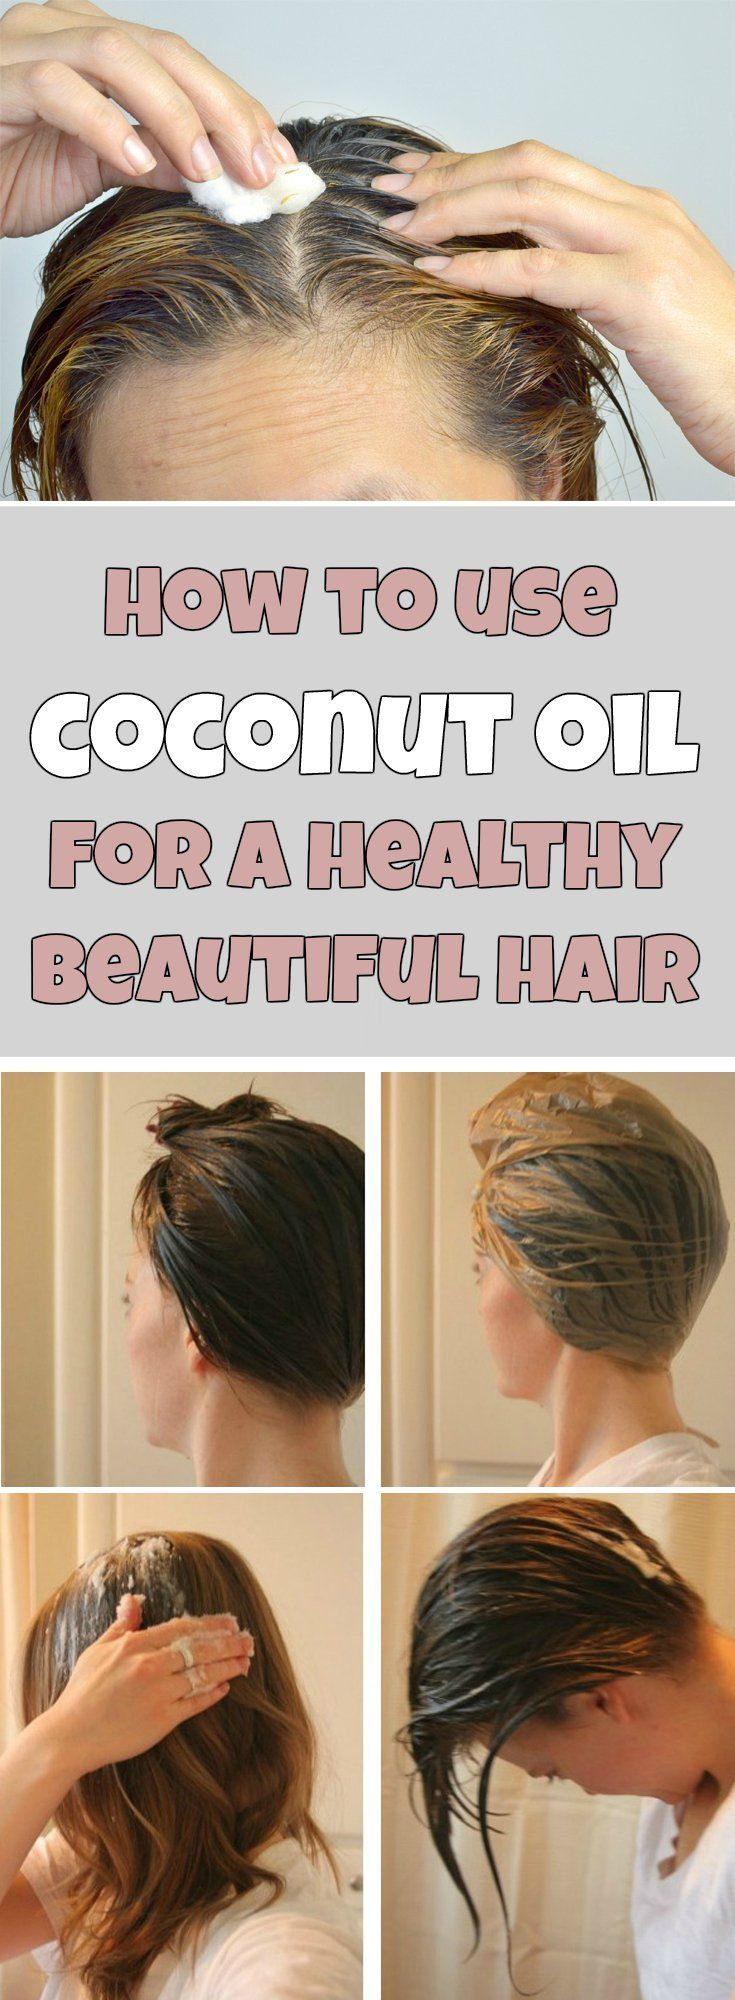 How to use coconut oil for a healthy beautiful hair #haircare